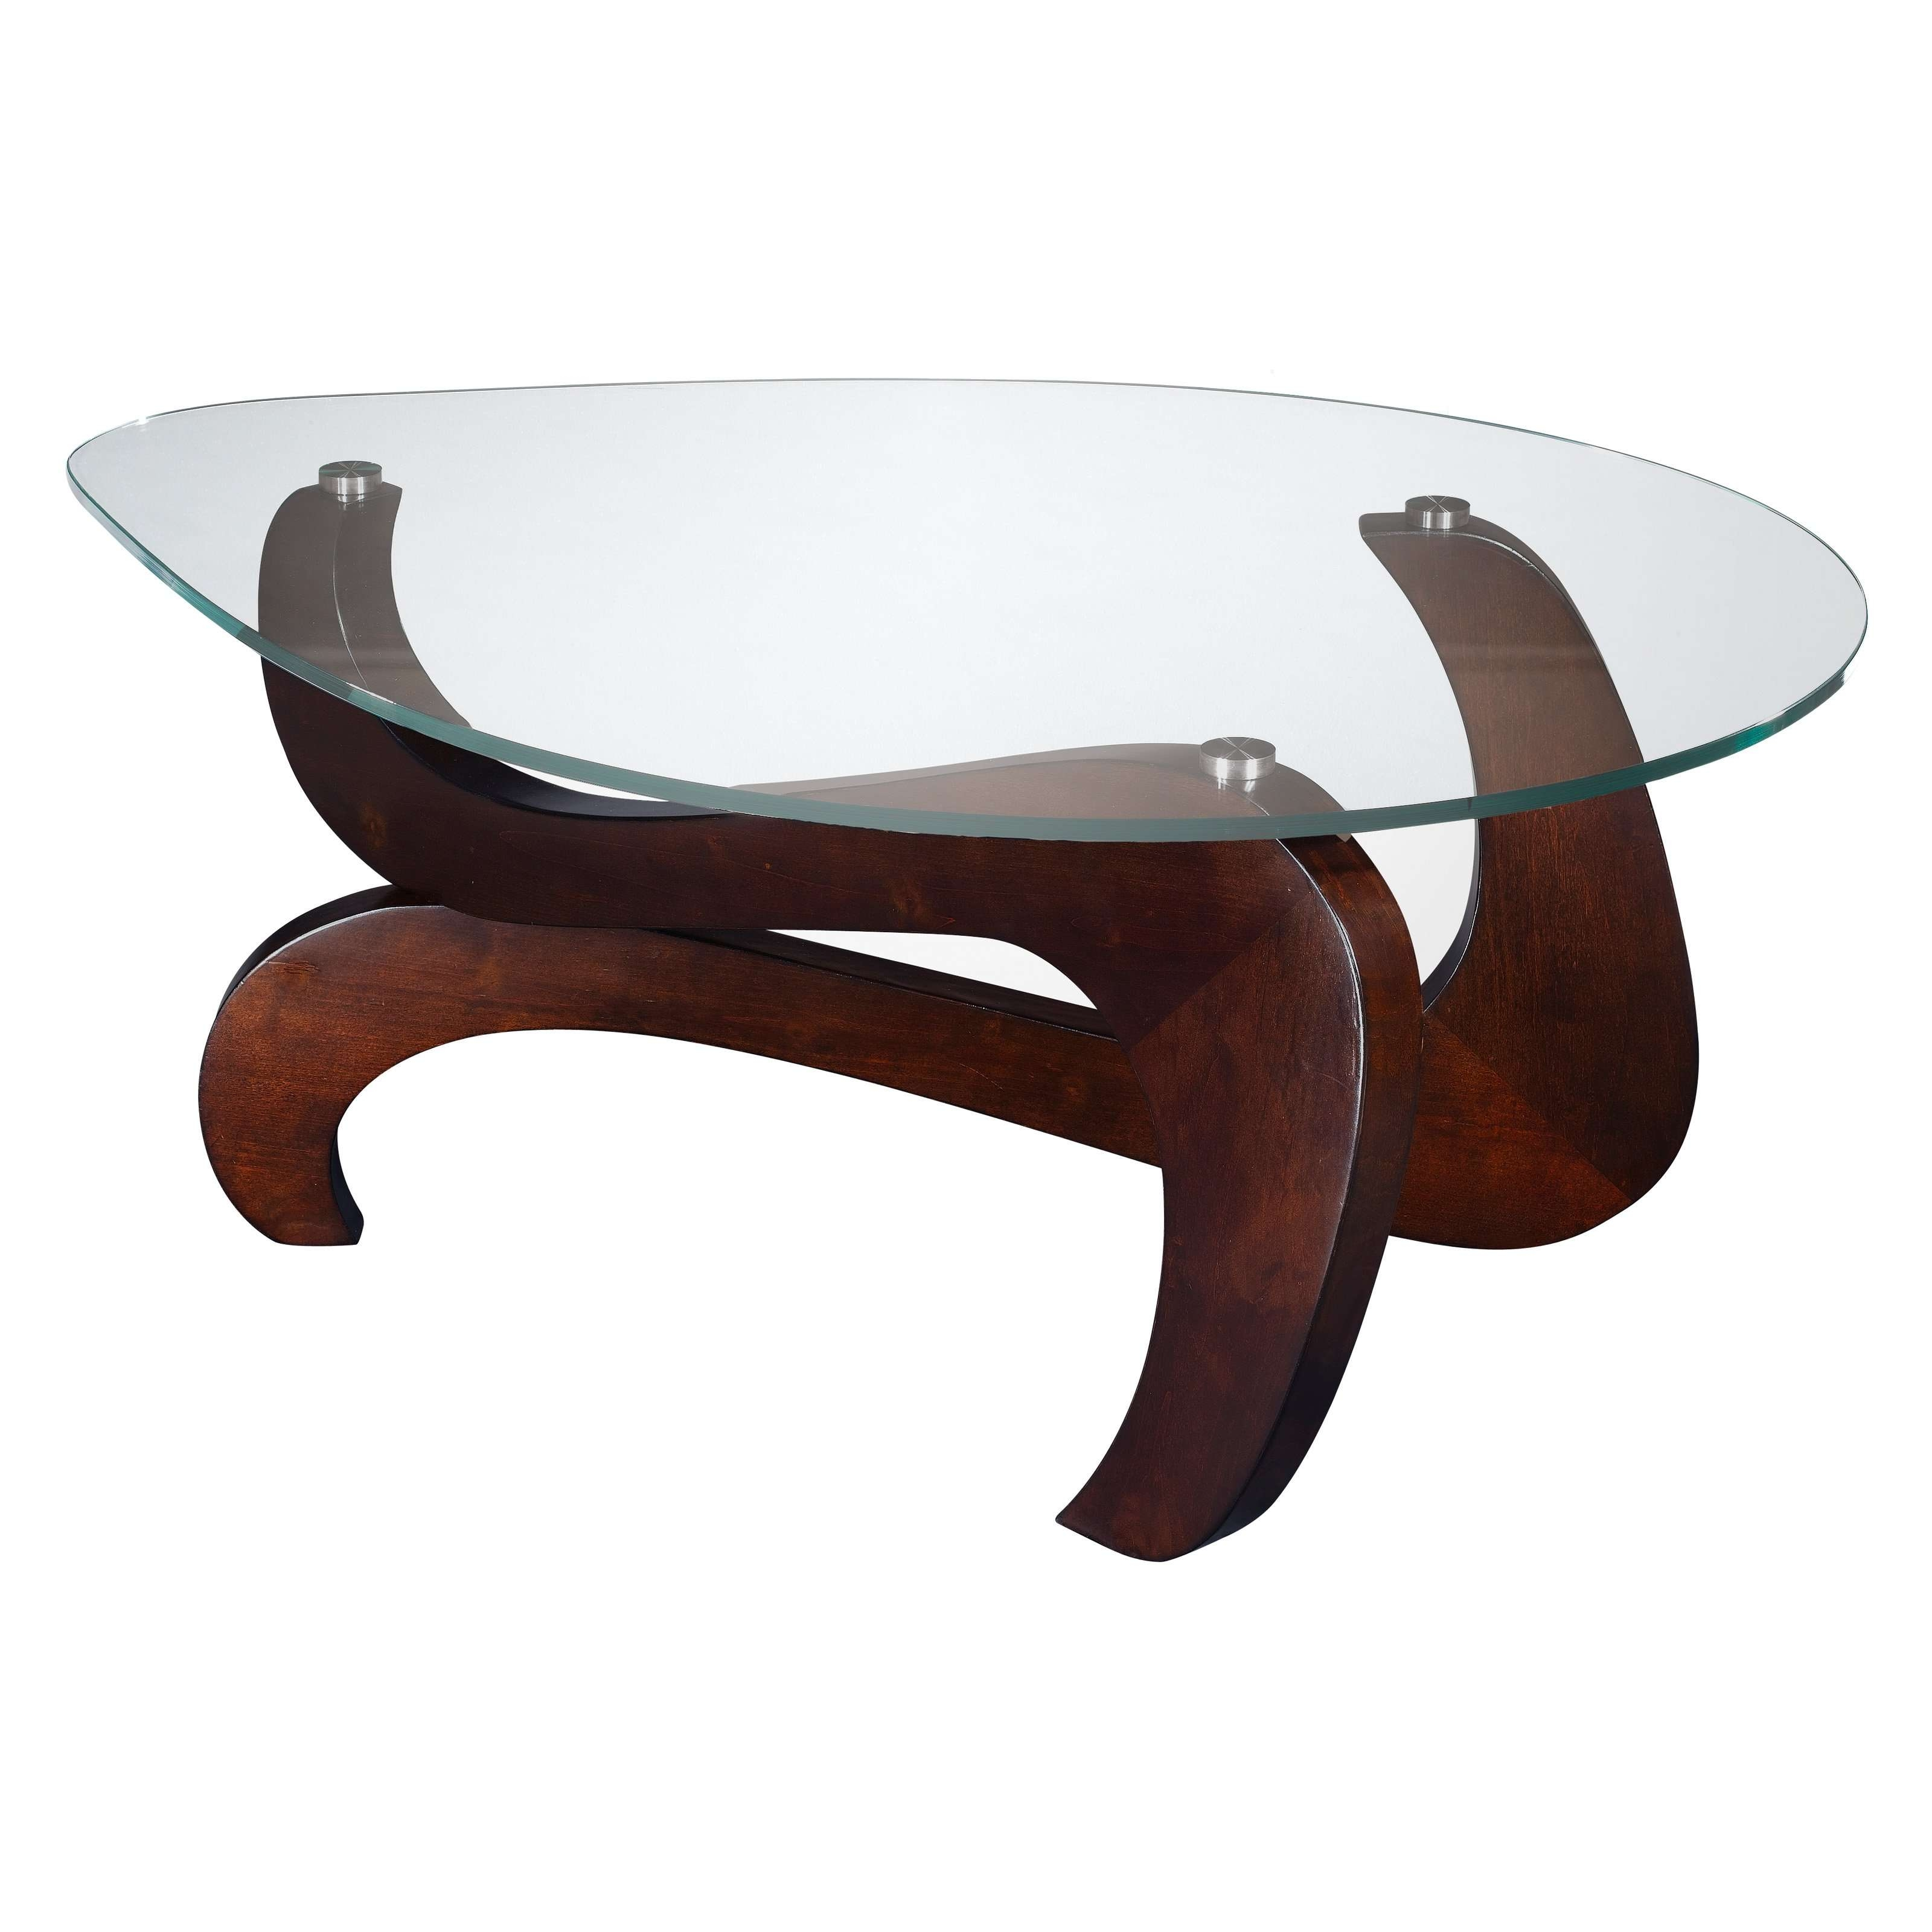 Decorations : Furniture Tear Drop Shape Glass Top With Brown High In Widely Used Oval Glass And Wood Coffee Tables (View 18 of 20)